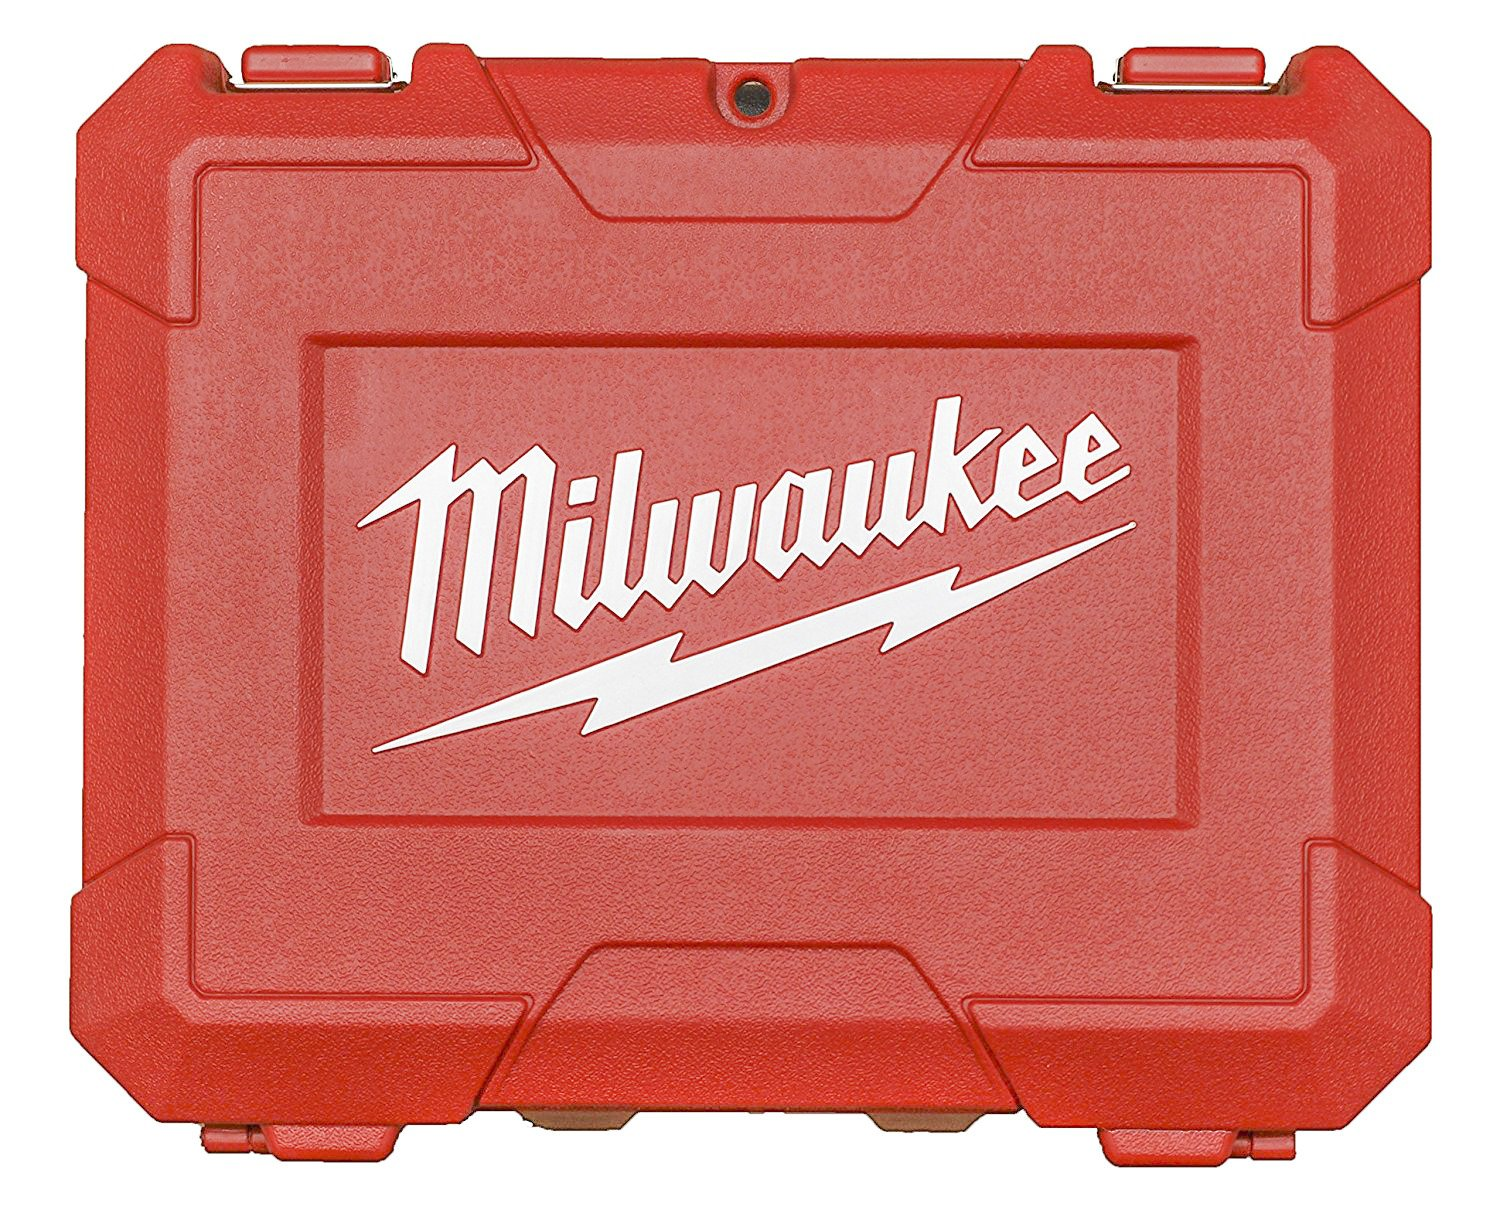 Milwaukee Tool Case Only - Fits 2606-20 / 2607-20 / 2606-22CT / 2607-22CT M18 Drill Driver / Hammer Drill Driver (No Tools / Accessories Included) by Milwaukee (Image #2)